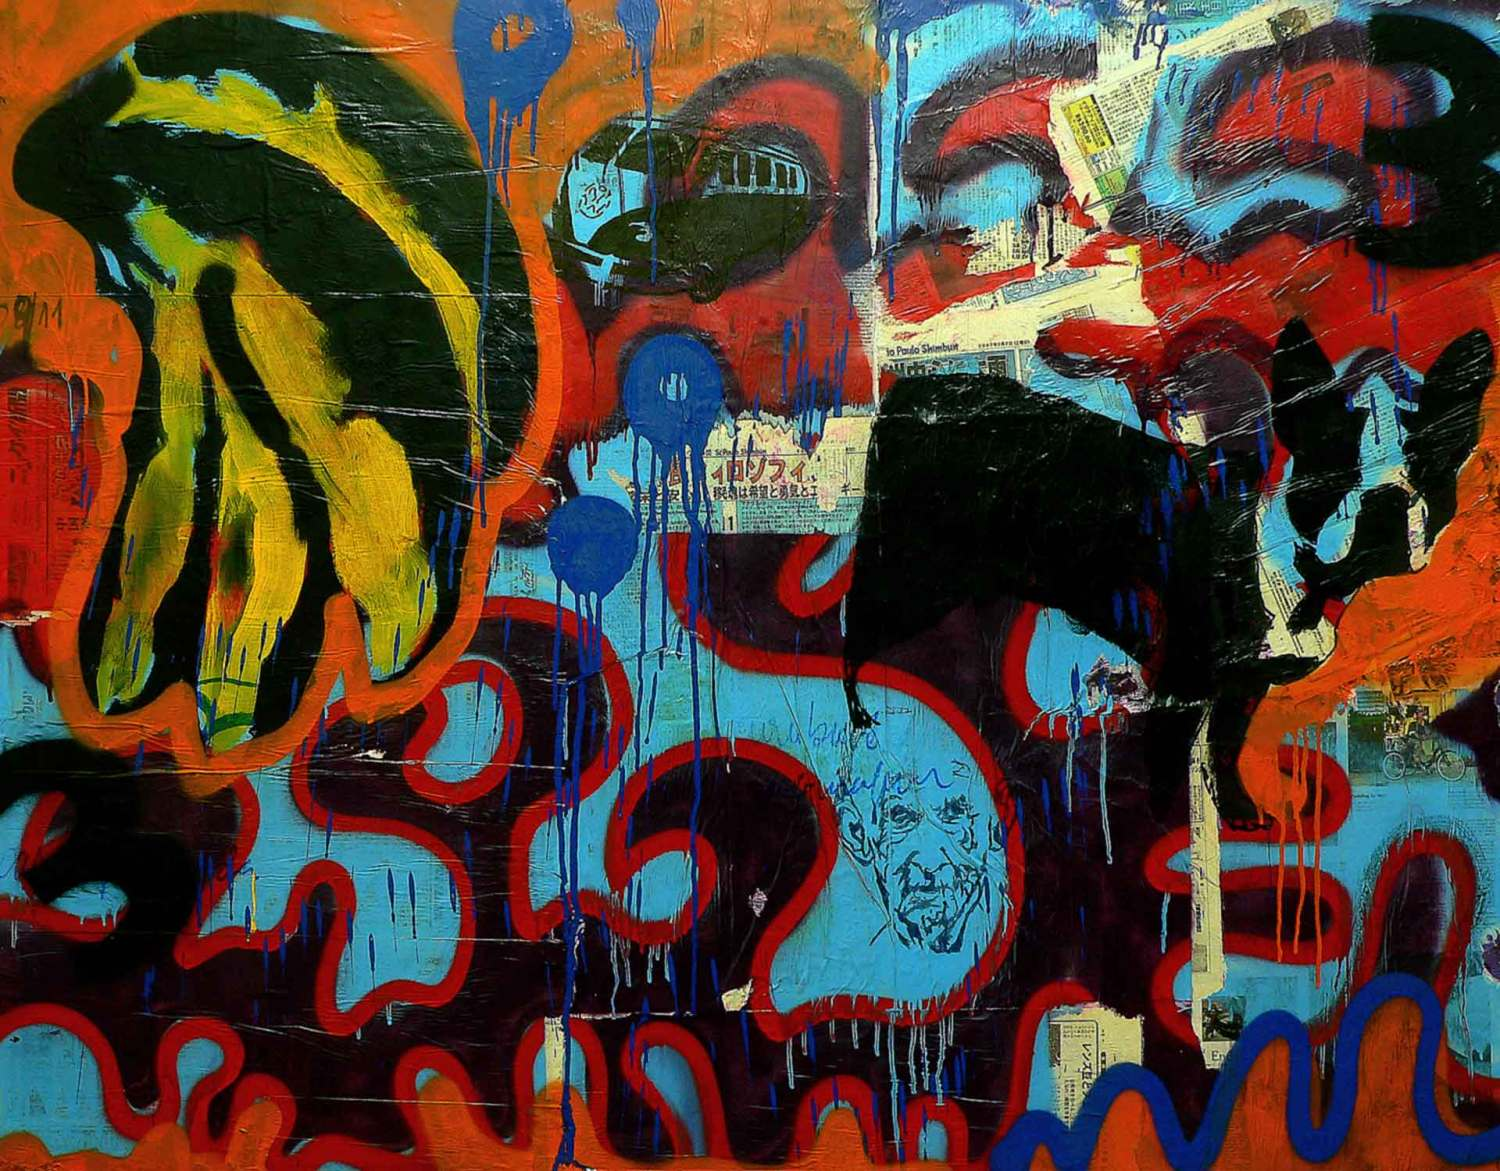 untitled - 130 x 165 cm - acrylic, spray paint, marker pen and collage on canvas - 2010